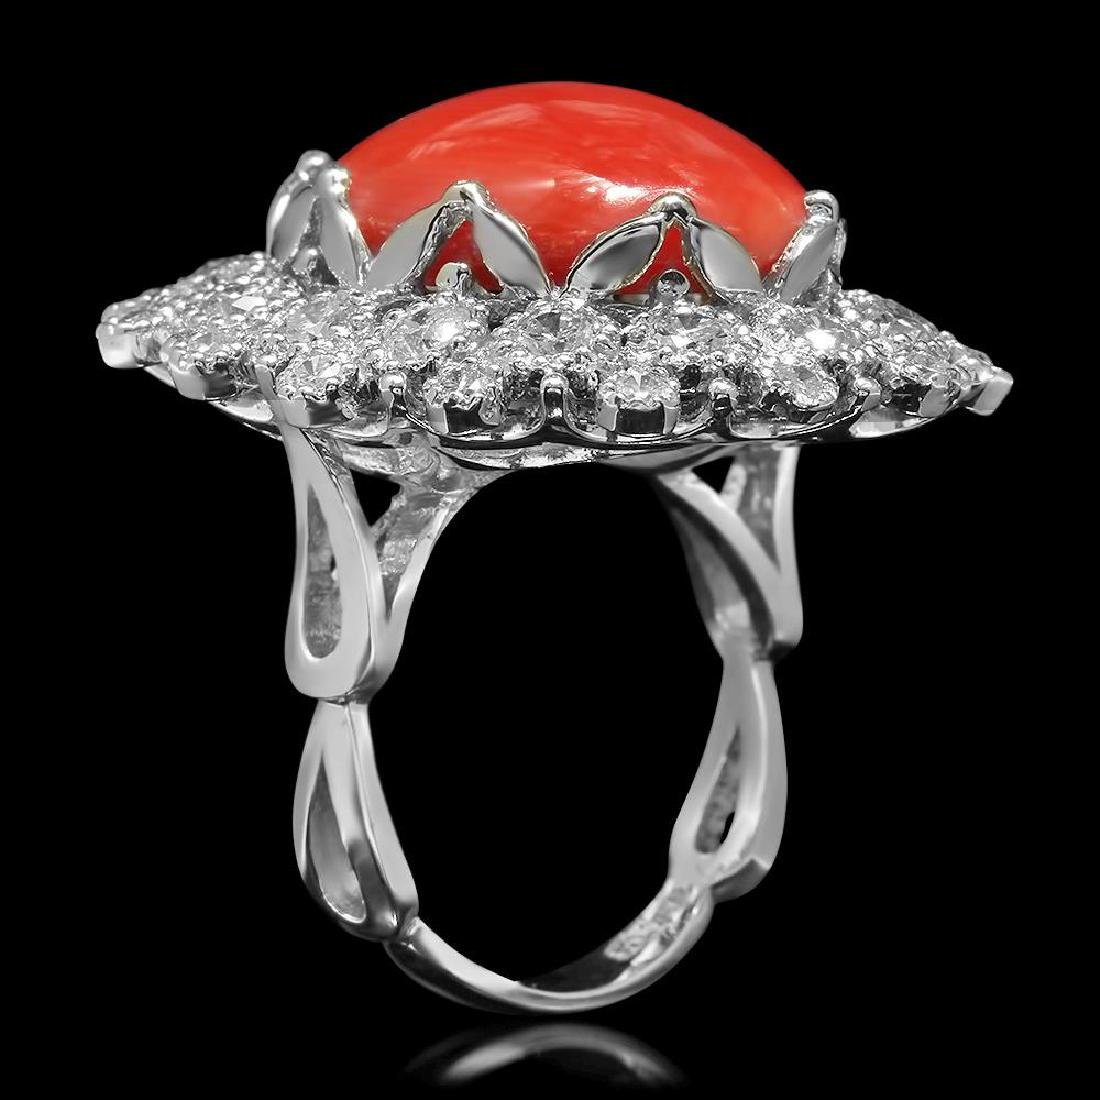 14K Gold 13.71ct Coral 2.58ct Diamond Ring - 2